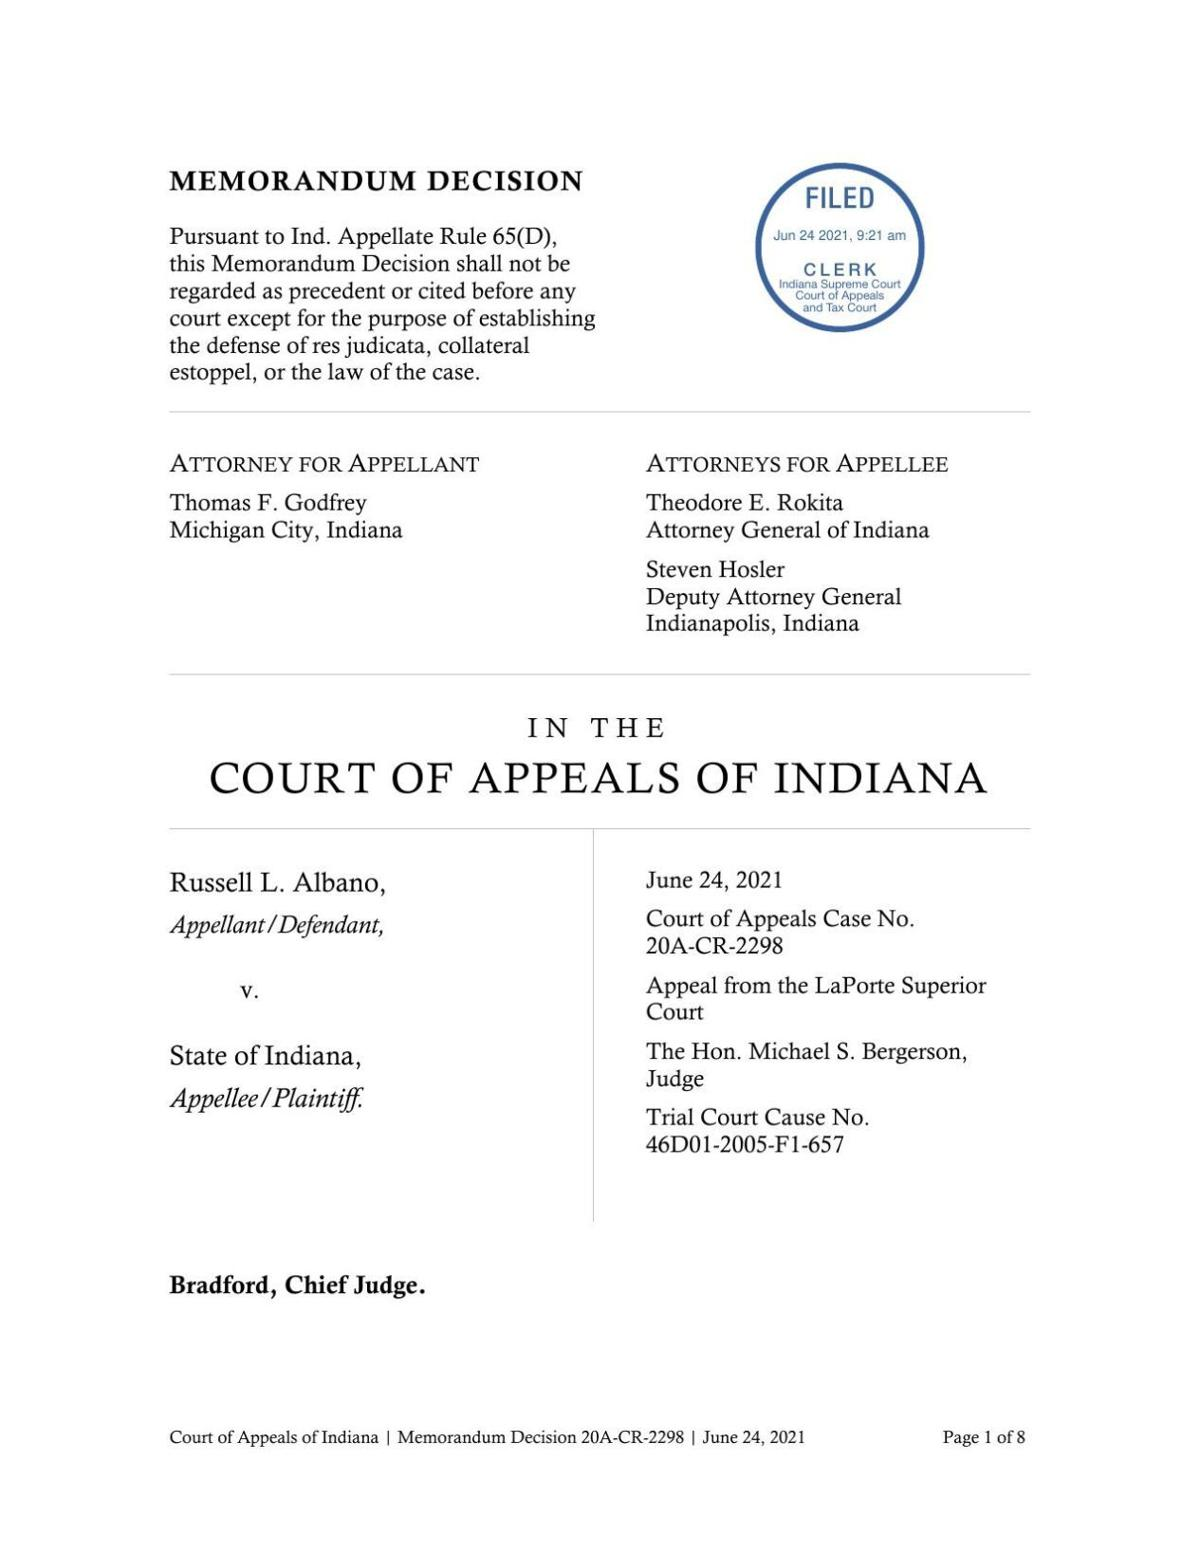 Albano v. State ruling of Indiana Court of Appeals